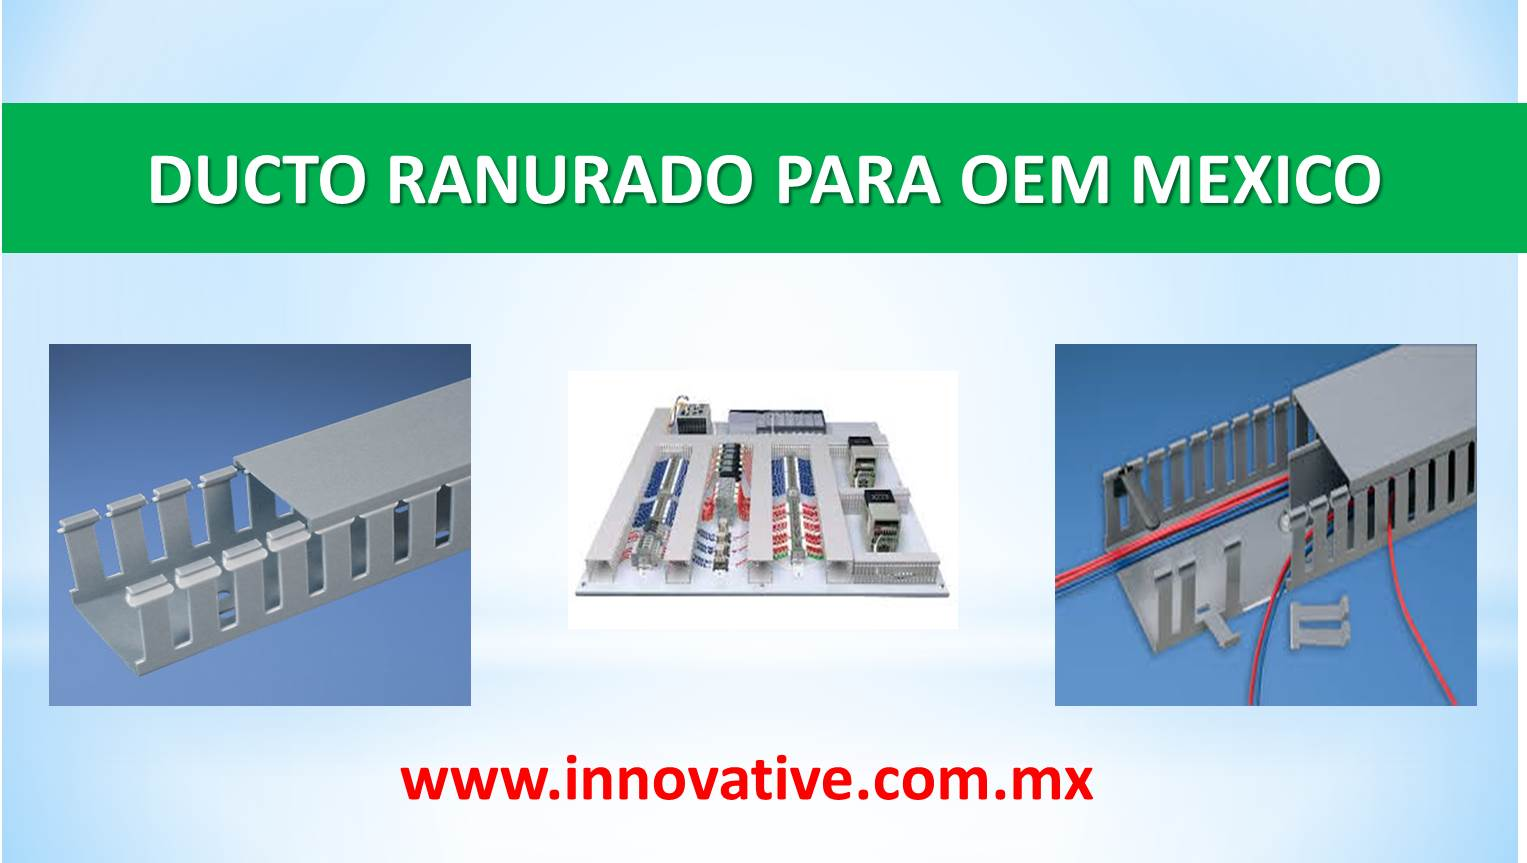 Wiring Harness Manufacturers In World : Cable harness manufacturers in mexico bag elsavadorla